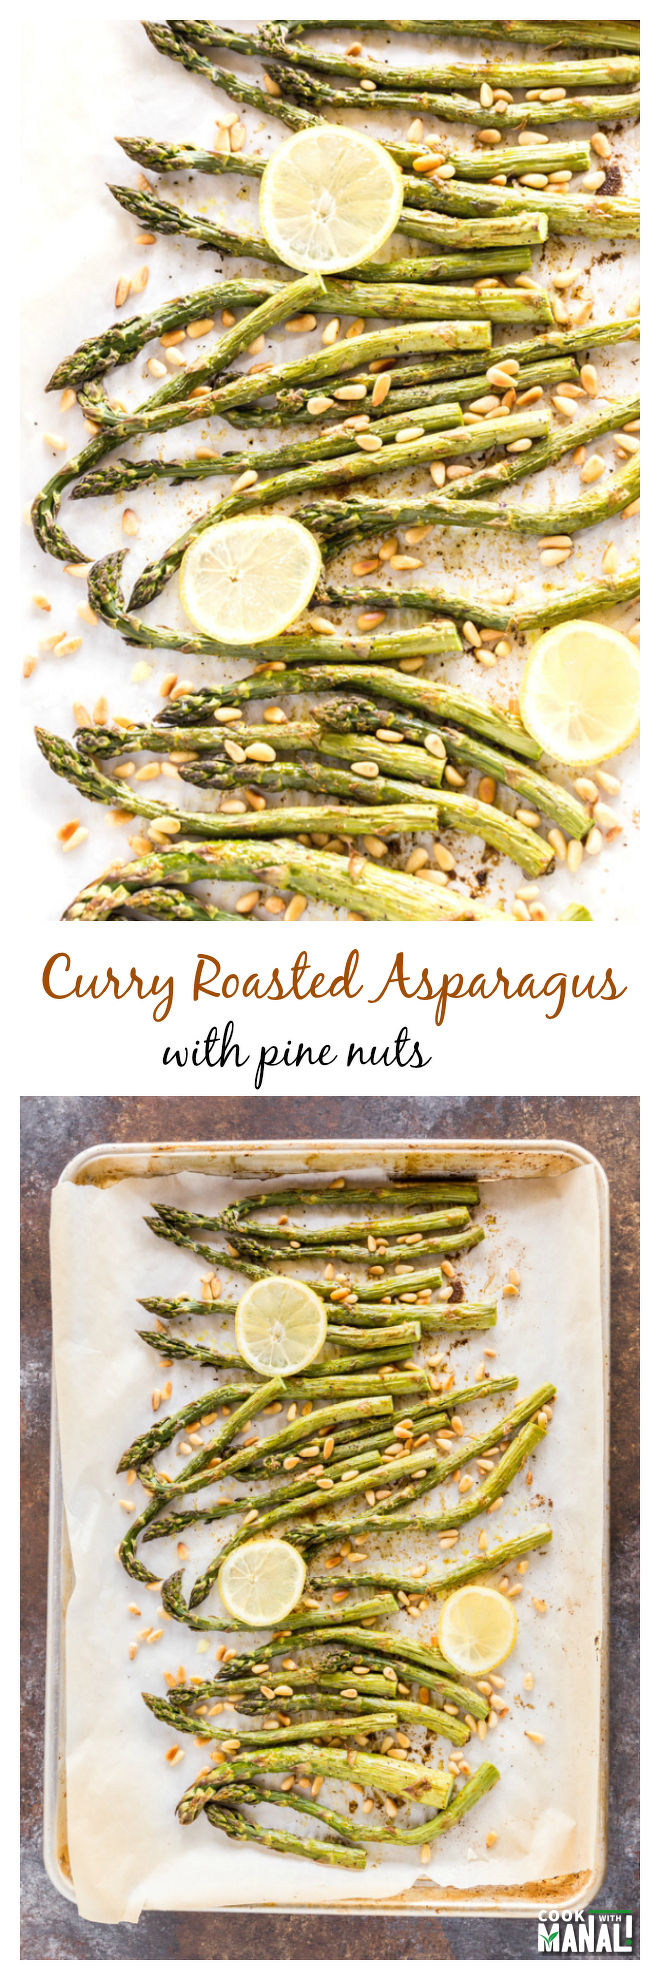 Curry Roasted Asparagus Collage